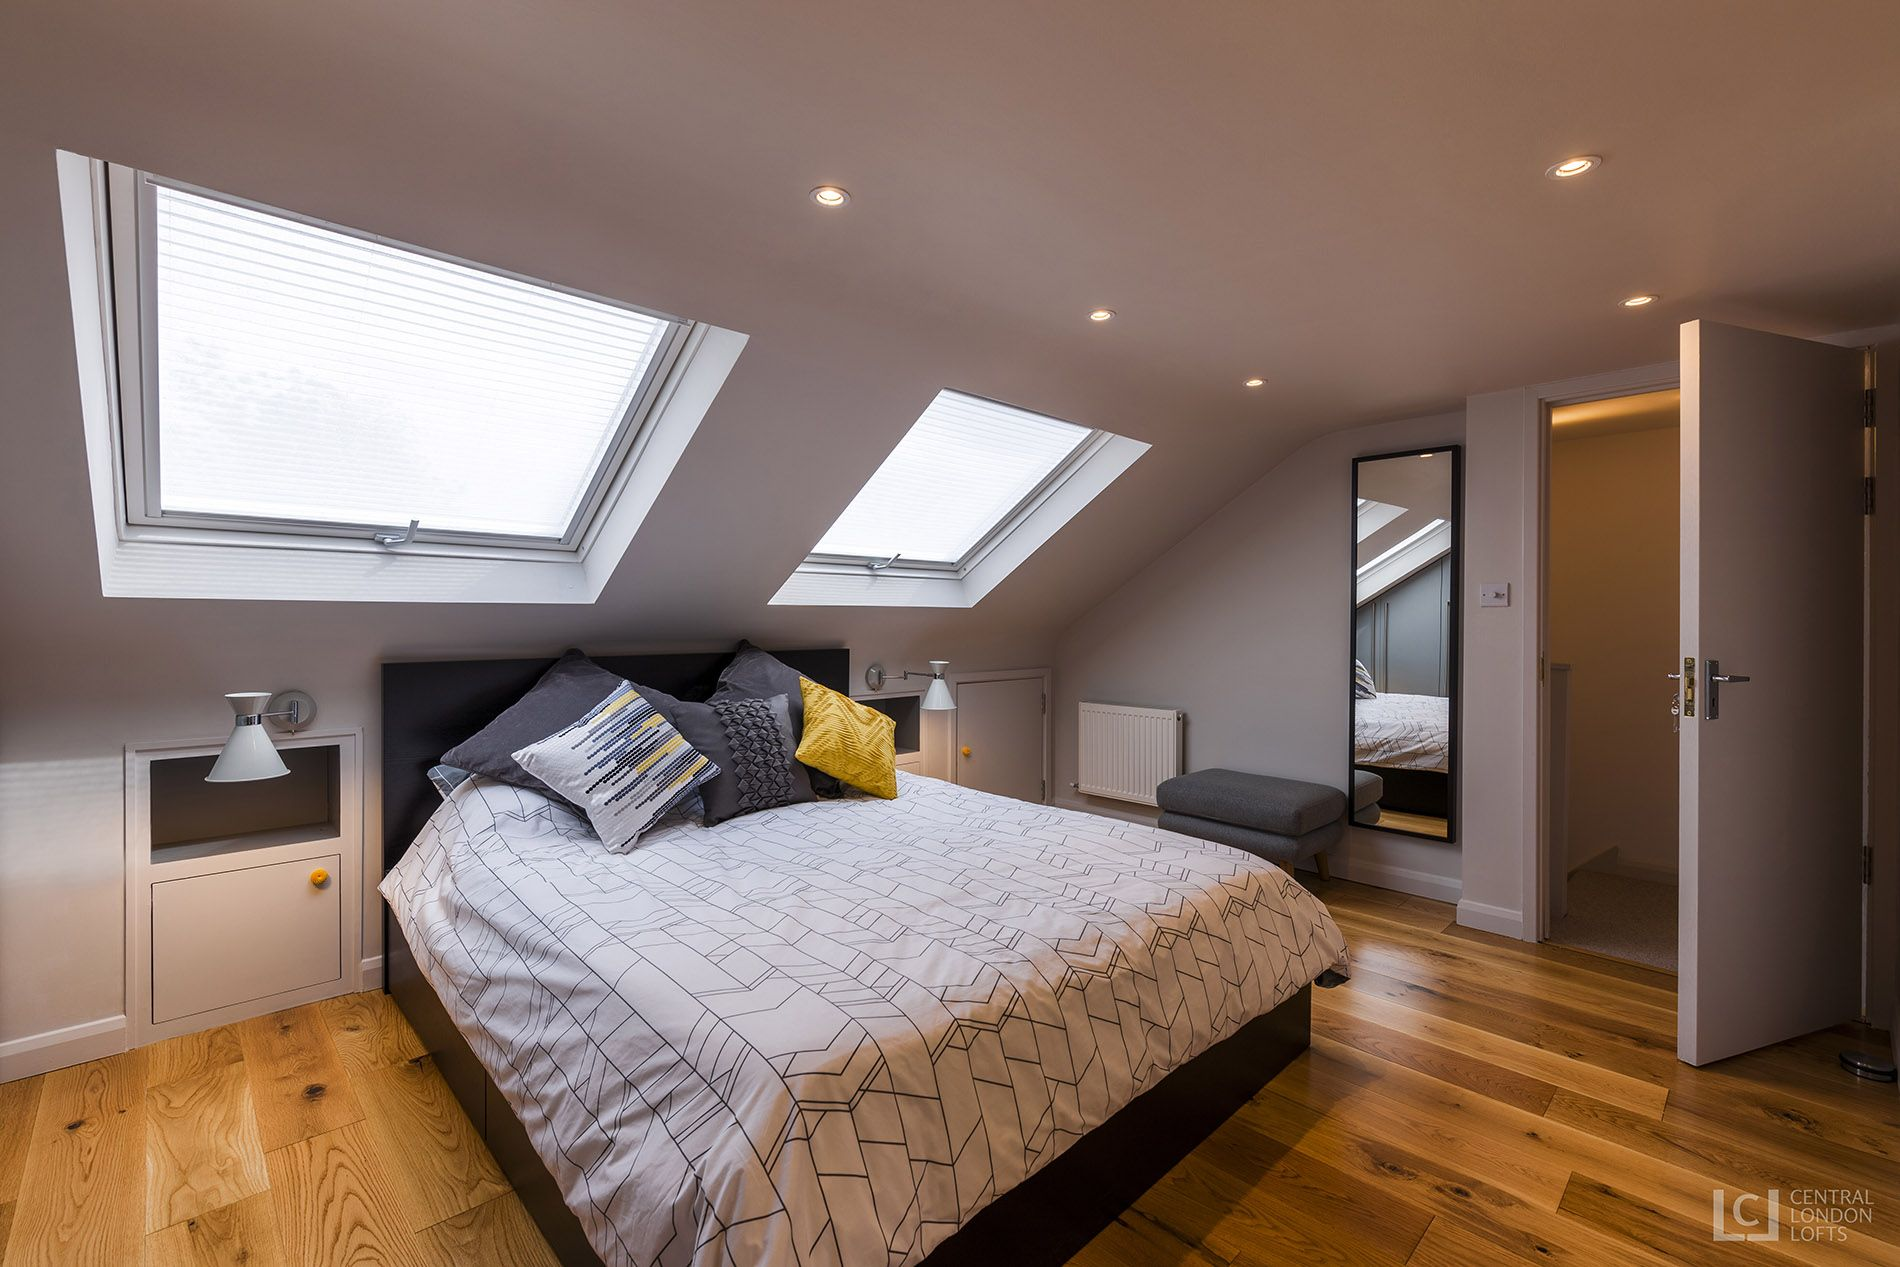 Located in the leafy south, this Blackheath loft conversion features a modern and cosy bedroom in this terraced property. #loftconversions